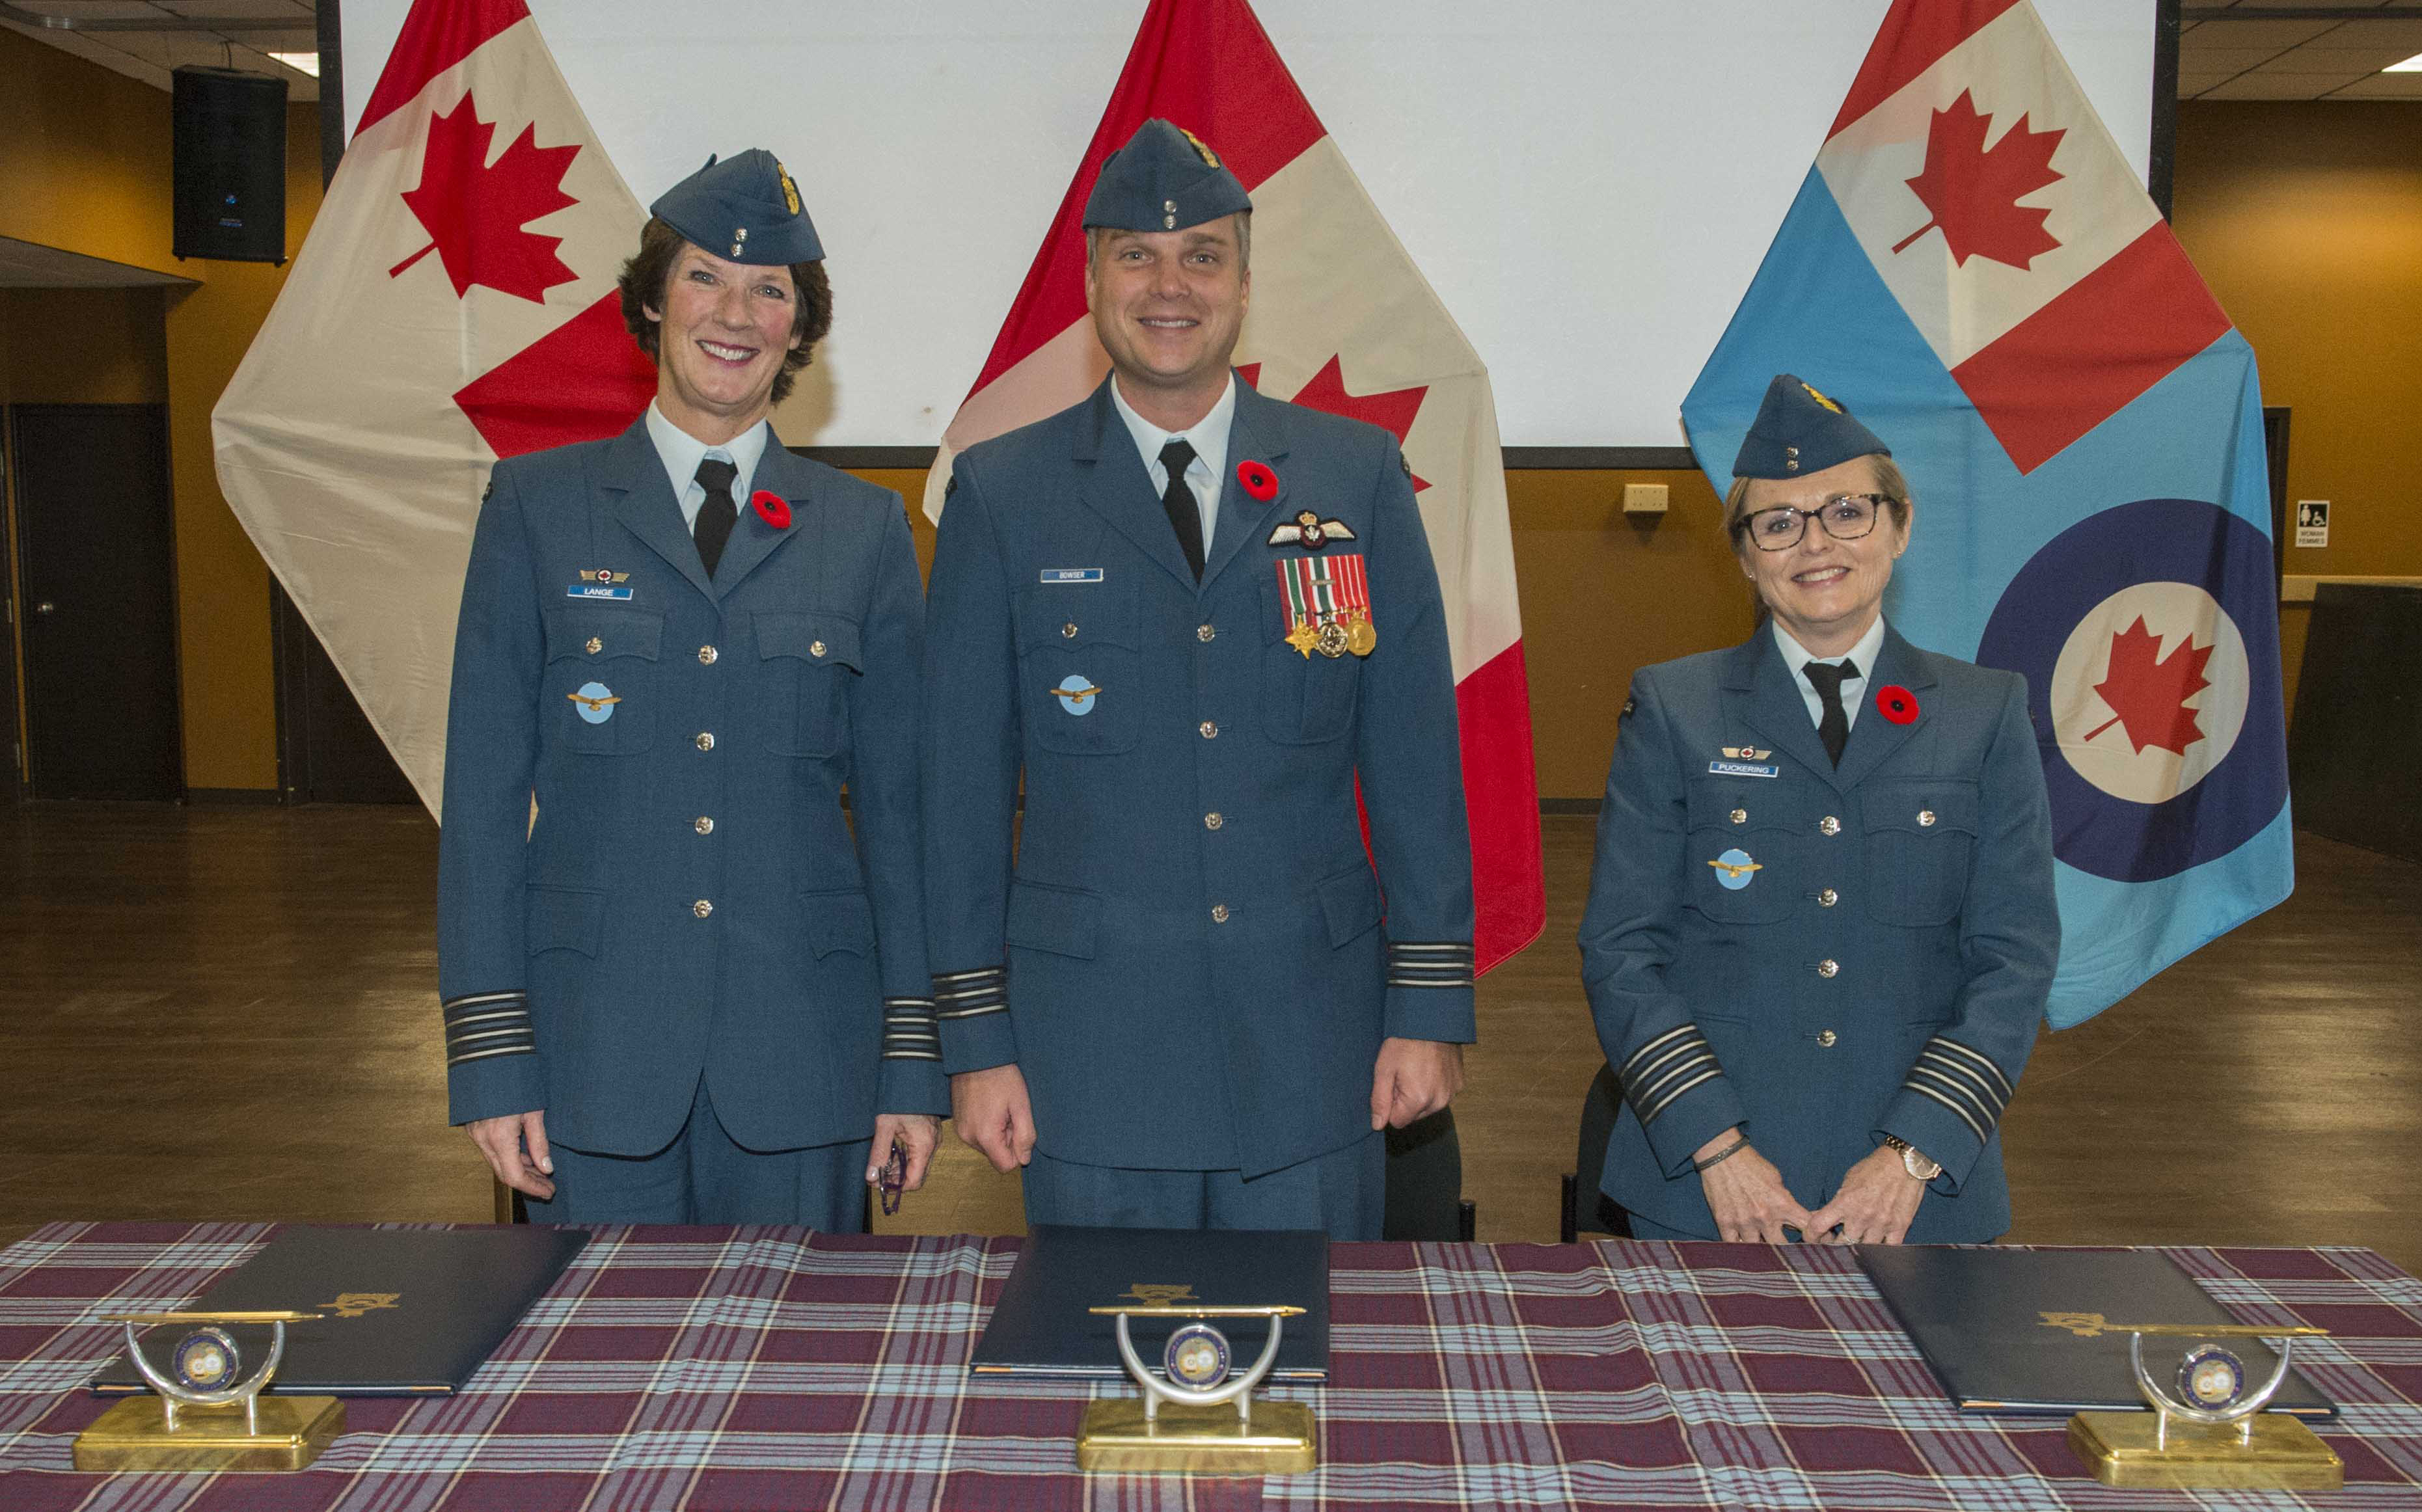 436 Squadron's outgoing honorary colonel, Julie Lange (left), 436 Squadron commanding officer Lieutenant-Colonel Andy Bowser, and the squadron's incoming honorary colonel, Cathie Puckering, are ready to sign the honorary colonel change of appointment documents during a ceremony at 8 Wing Trenton, Ontario on November 1, 2019. PHOTO: Corporal Rob Stanley, TN08-2019-0412-001